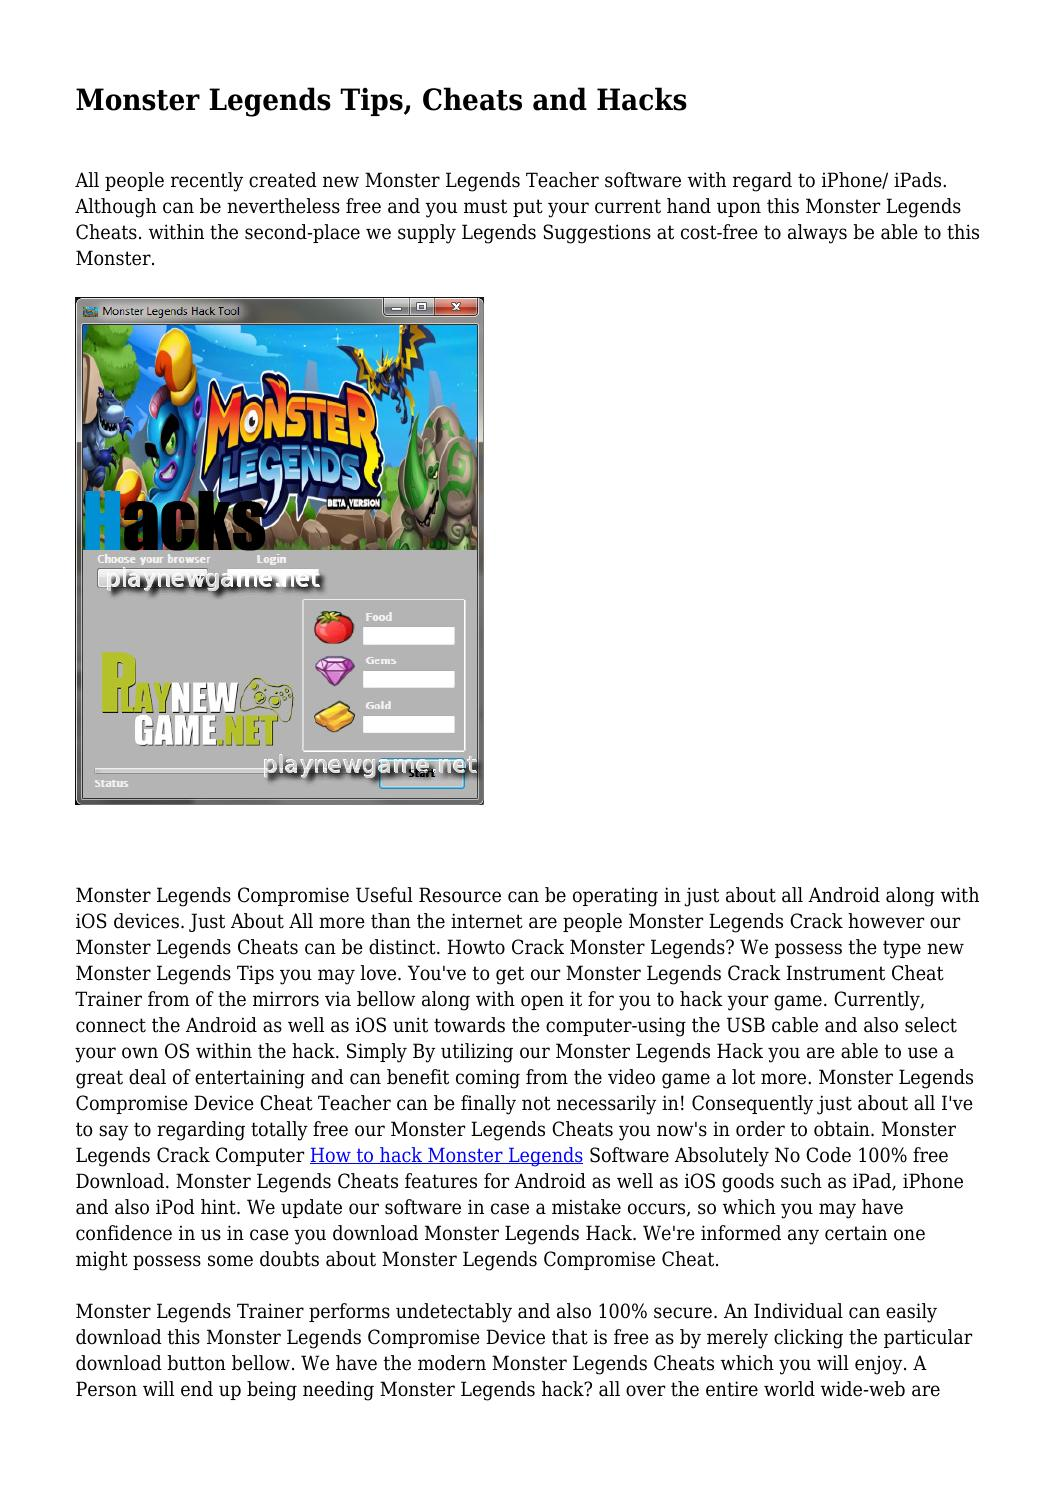 Monster Legends Tips Cheats And Hacks By Gouldhlbrcdctsj Issuu